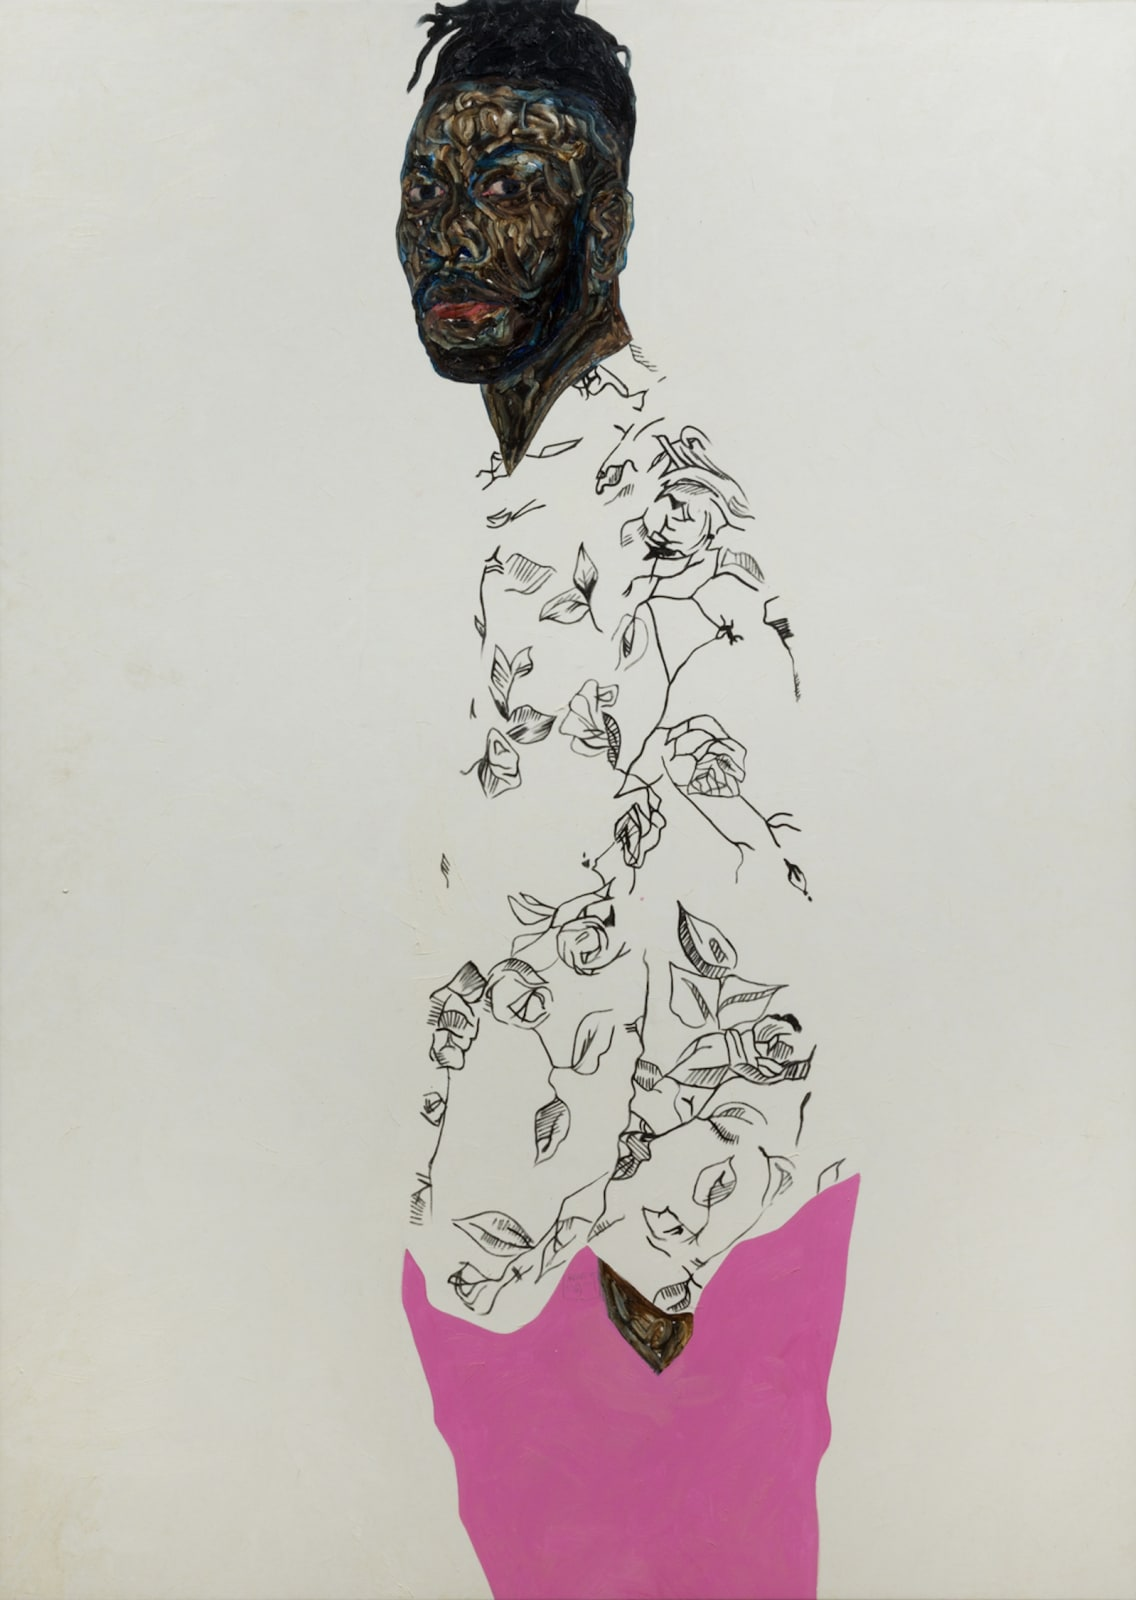 Amoako Boafo, Self portrait with pink pants, 2020